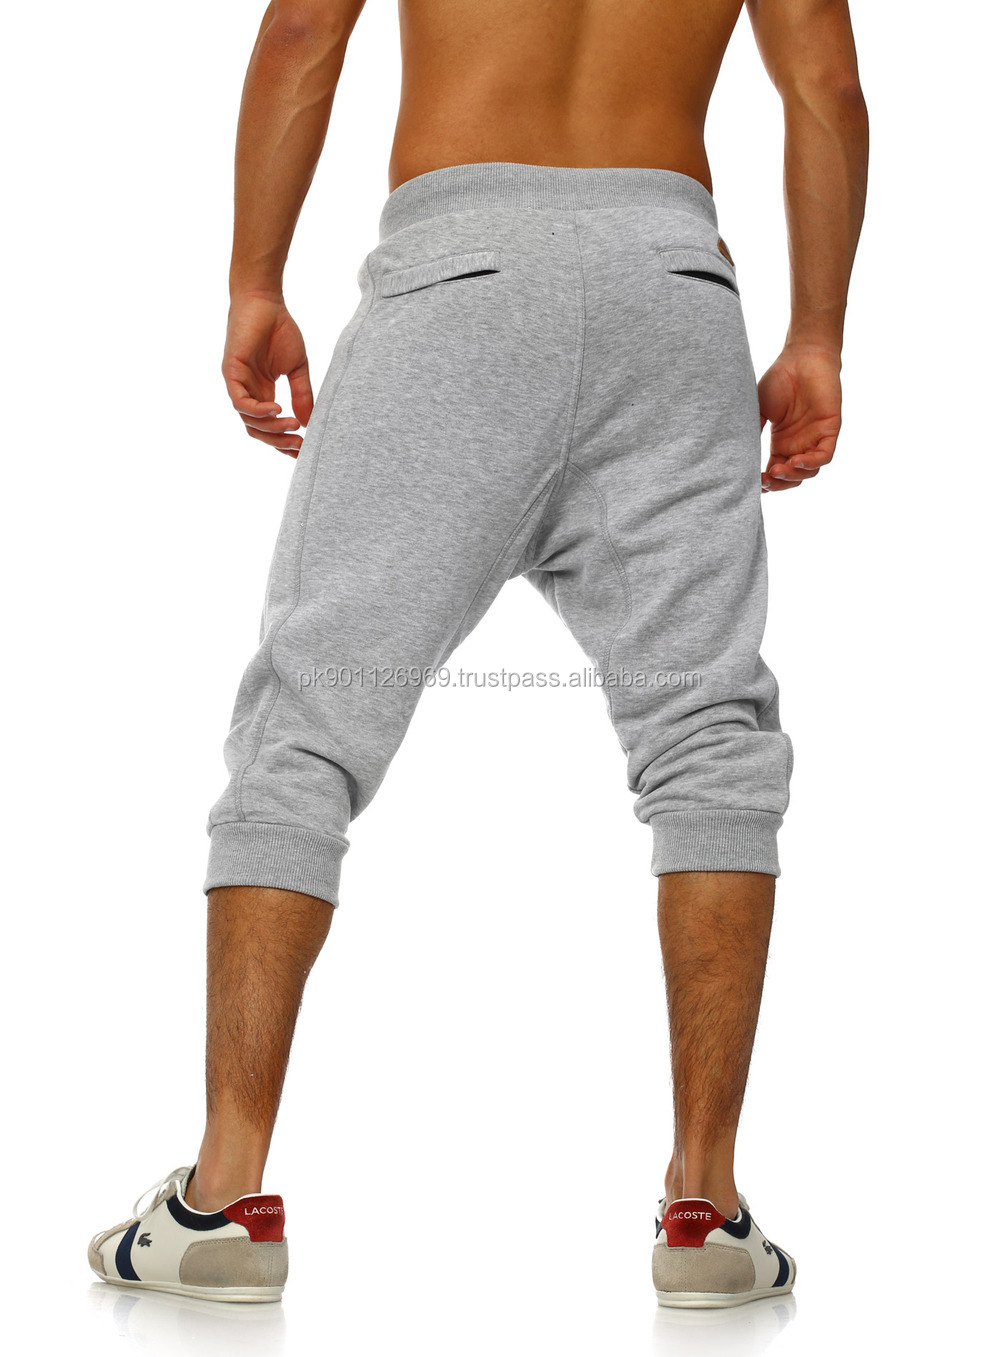 Free shipping BOTH ways on pants for short men, from our vast selection of styles. Fast delivery, and 24/7/ real-person service with a smile. Click or call